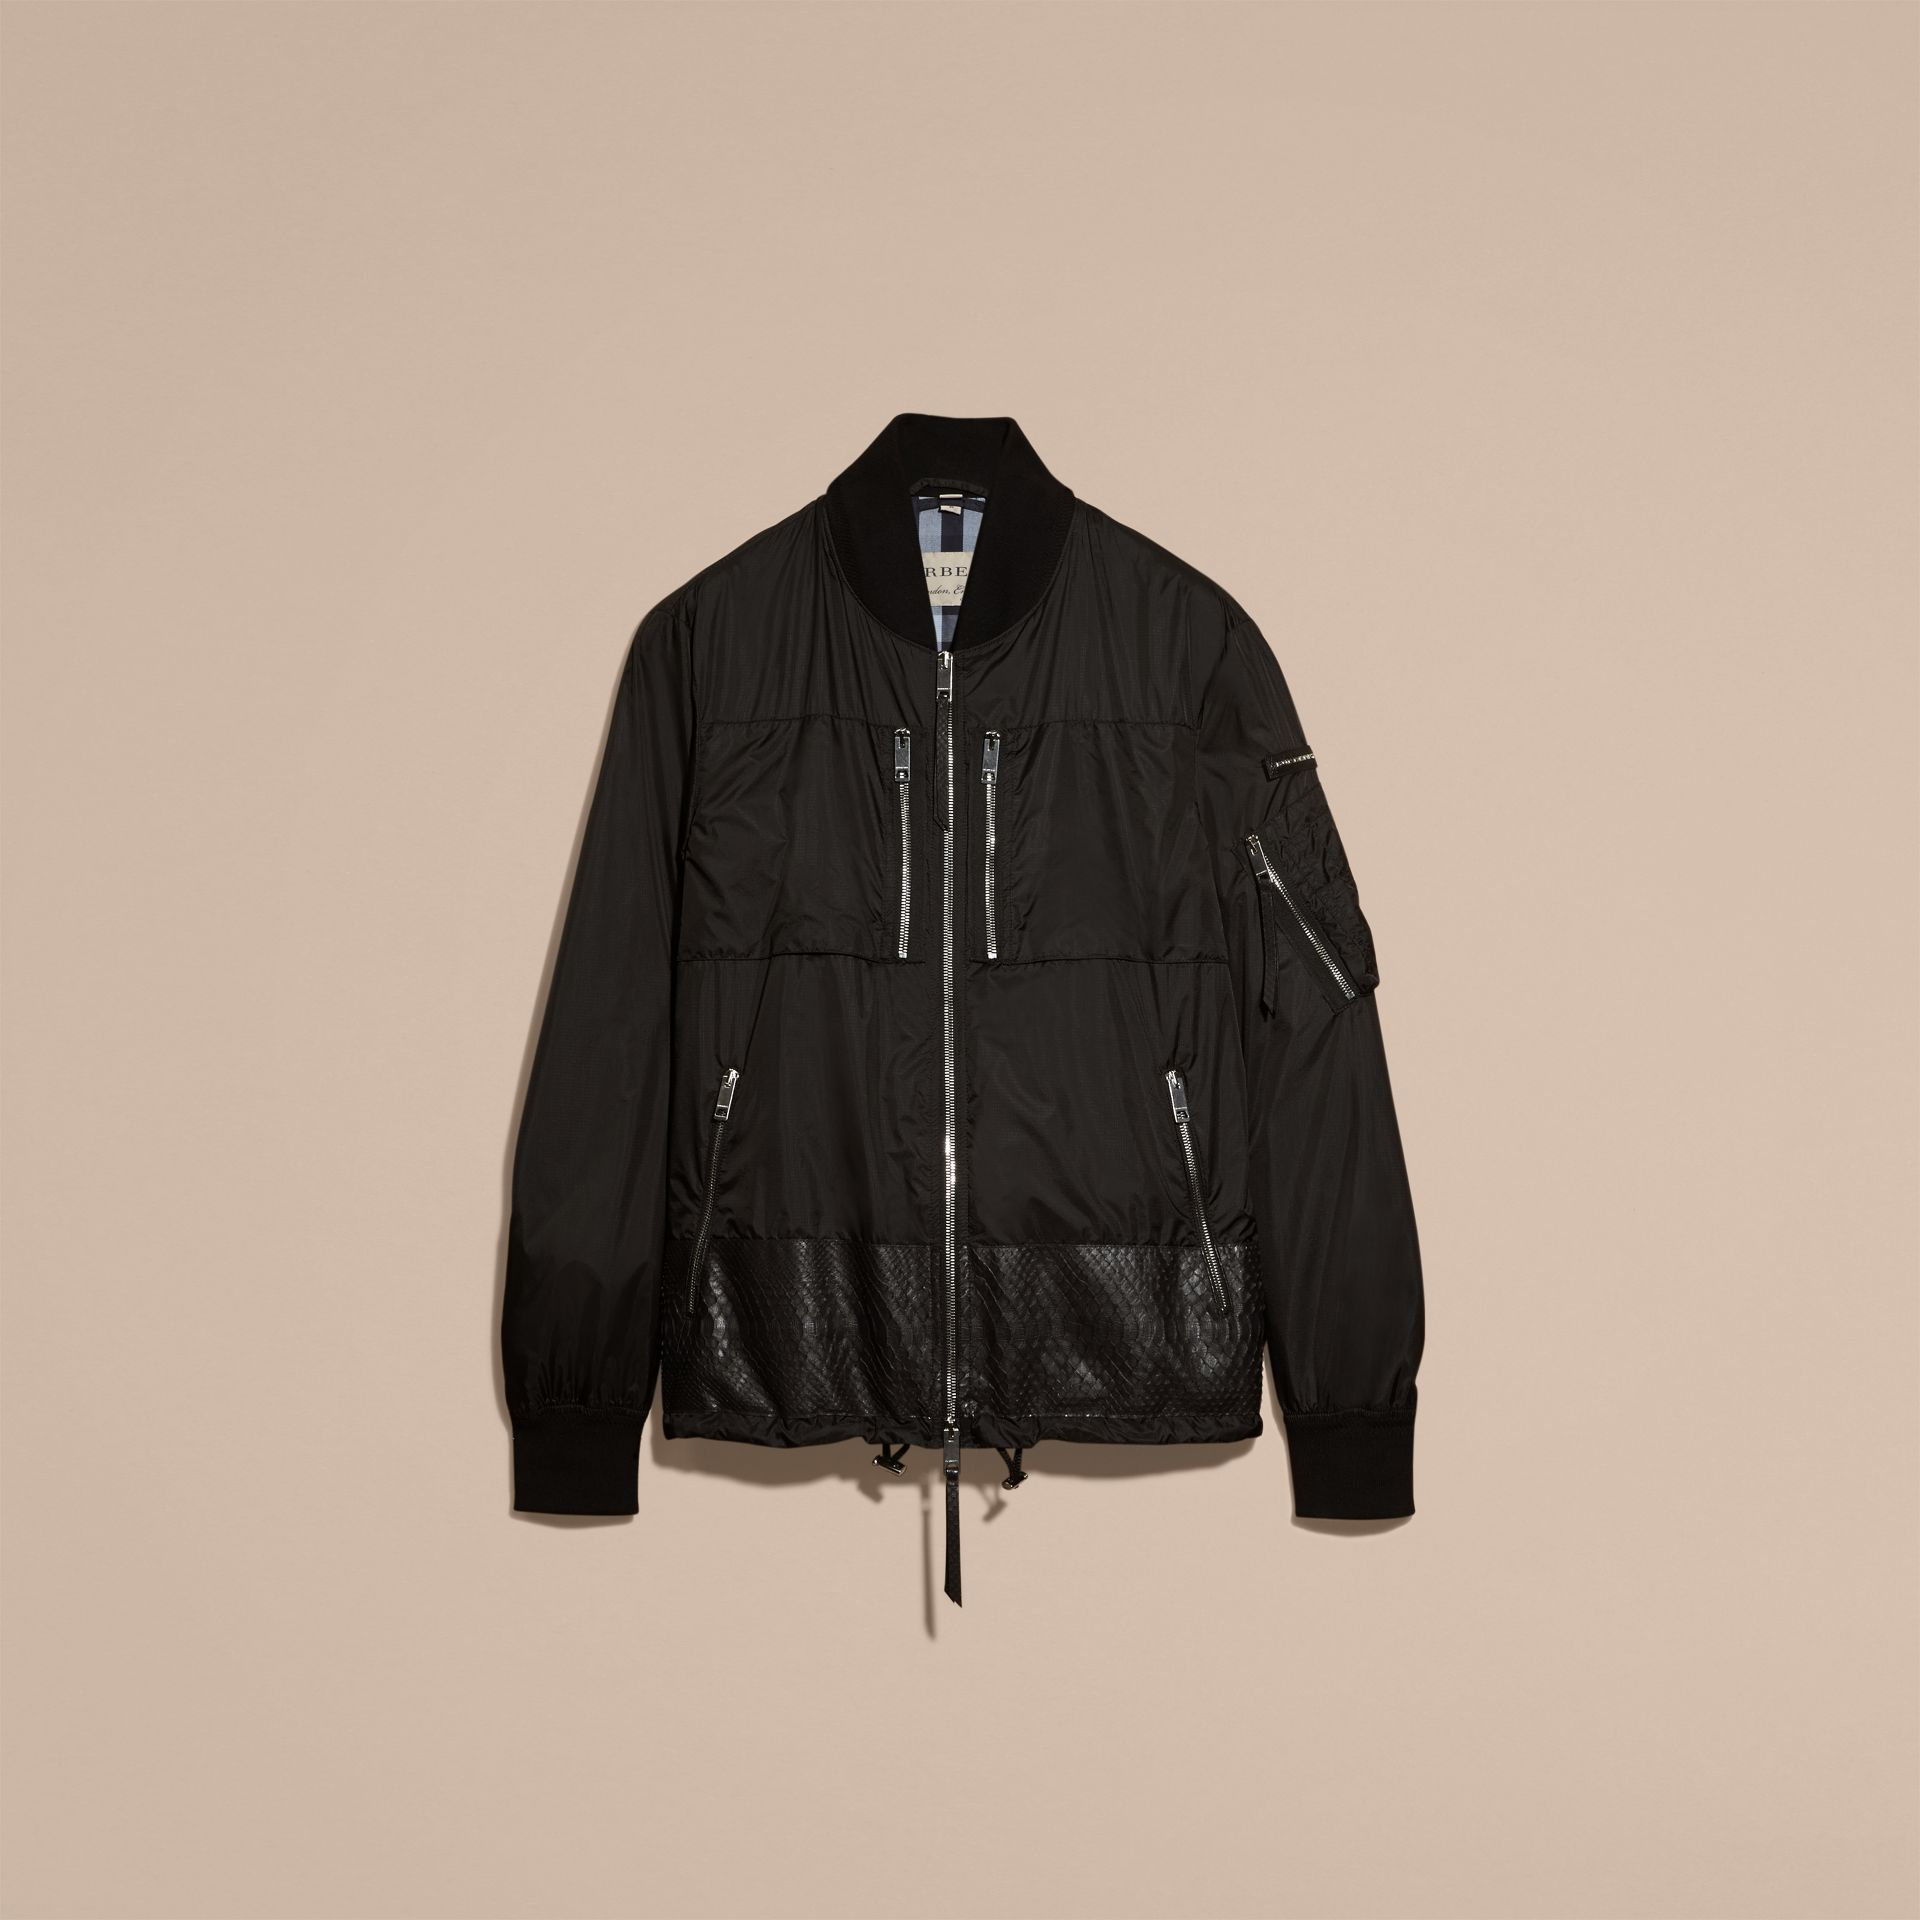 Lightweight Technical Bomber Jacket with Snakeskin in Black - Men | Burberry - gallery image 4